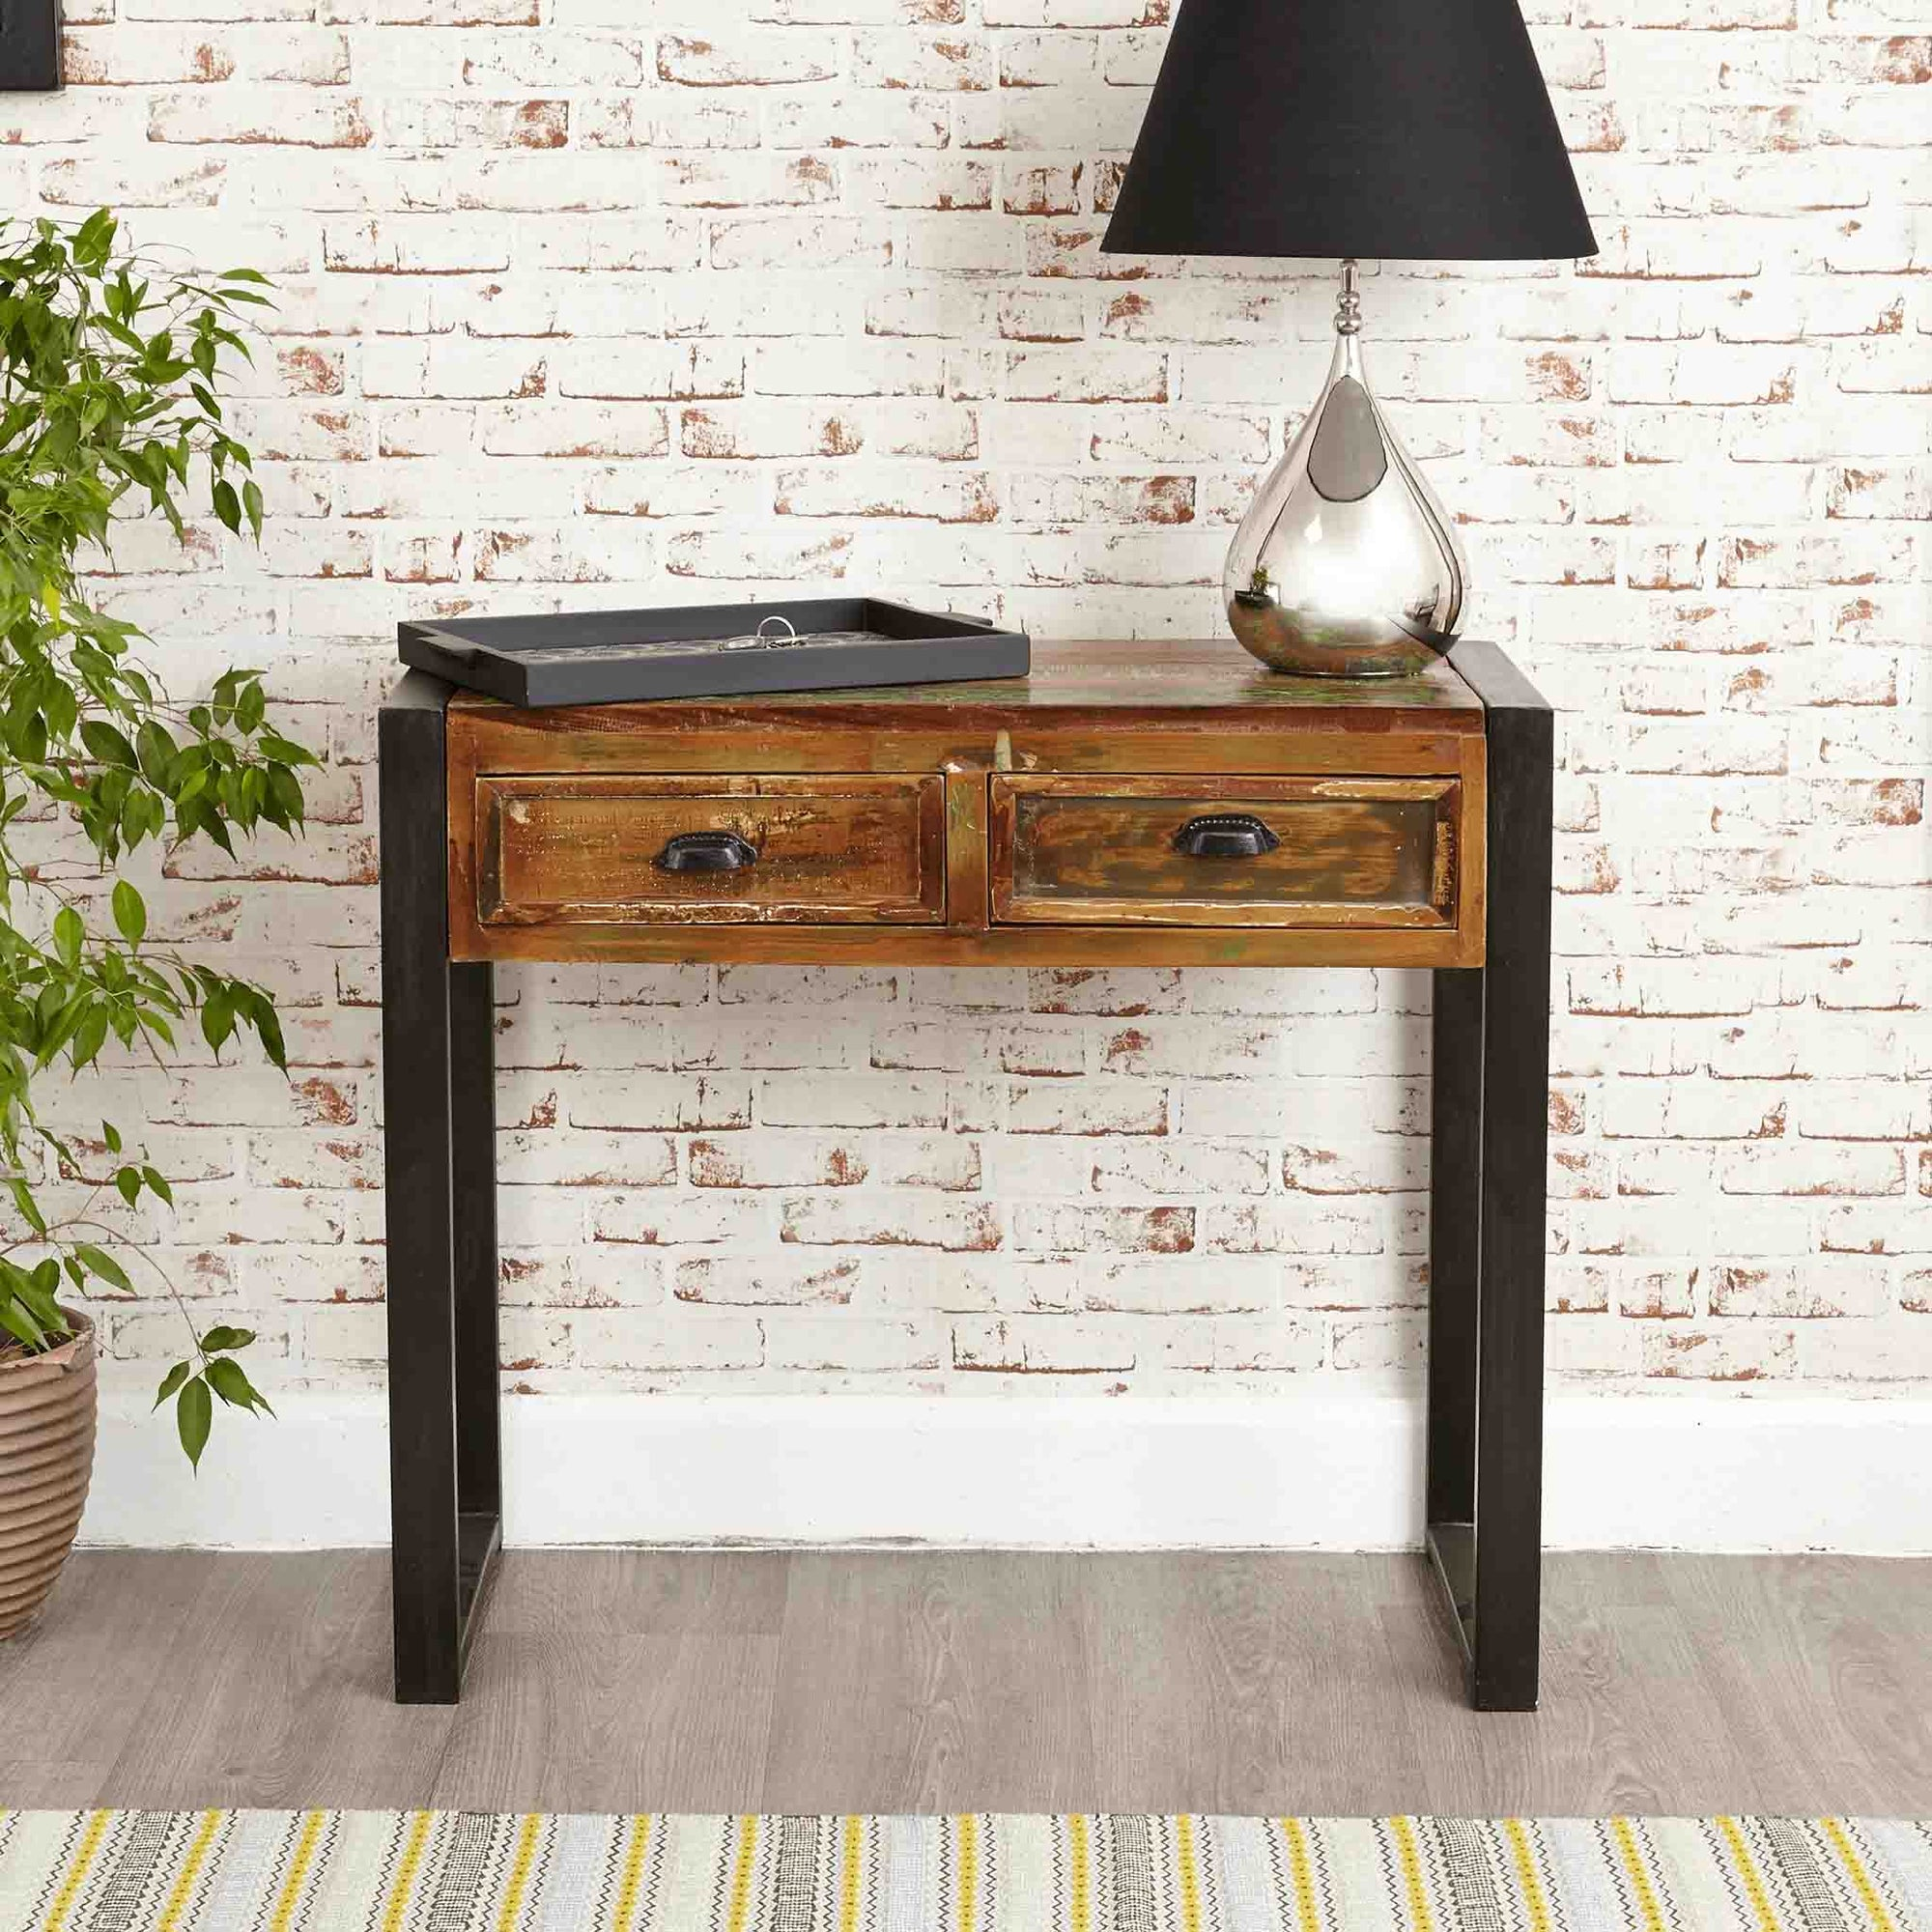 The Urban Chic Industrial Reclaimed Wood Console Table with 2 Drawers from Roseland Furniture